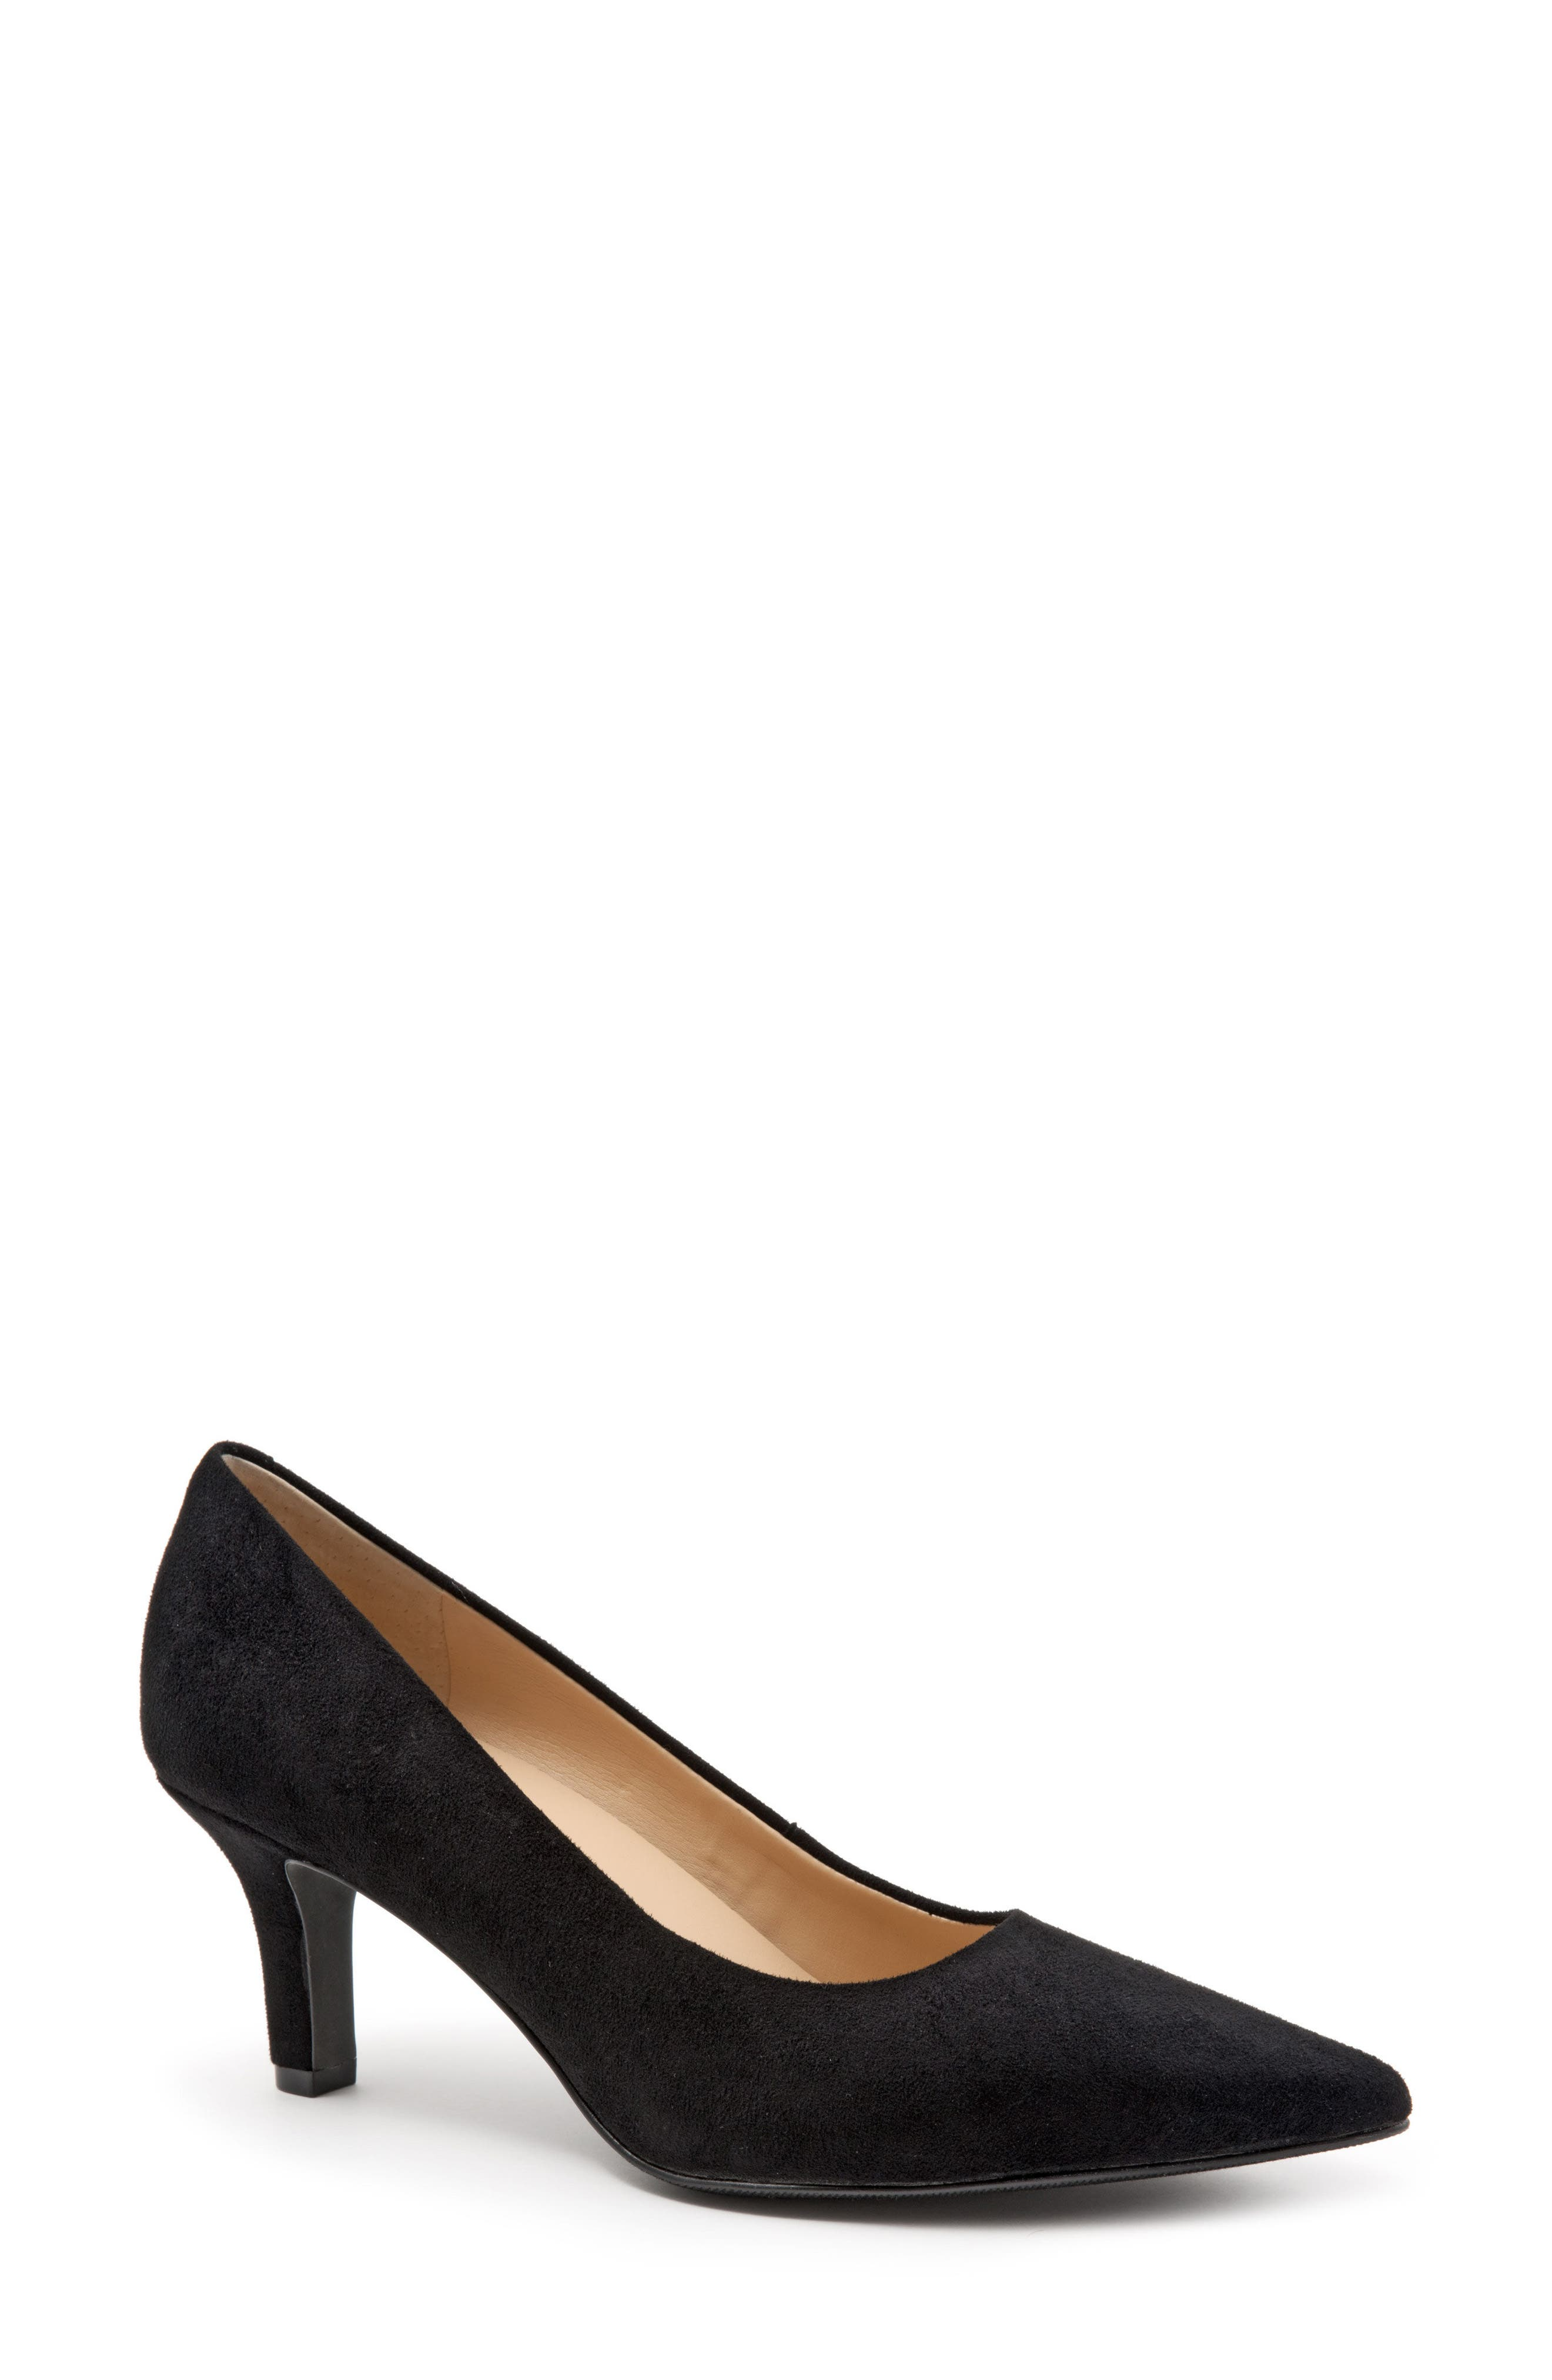 TROTTERS, Noelle Pointy Toe Pump, Main thumbnail 1, color, BLACK FABRIC